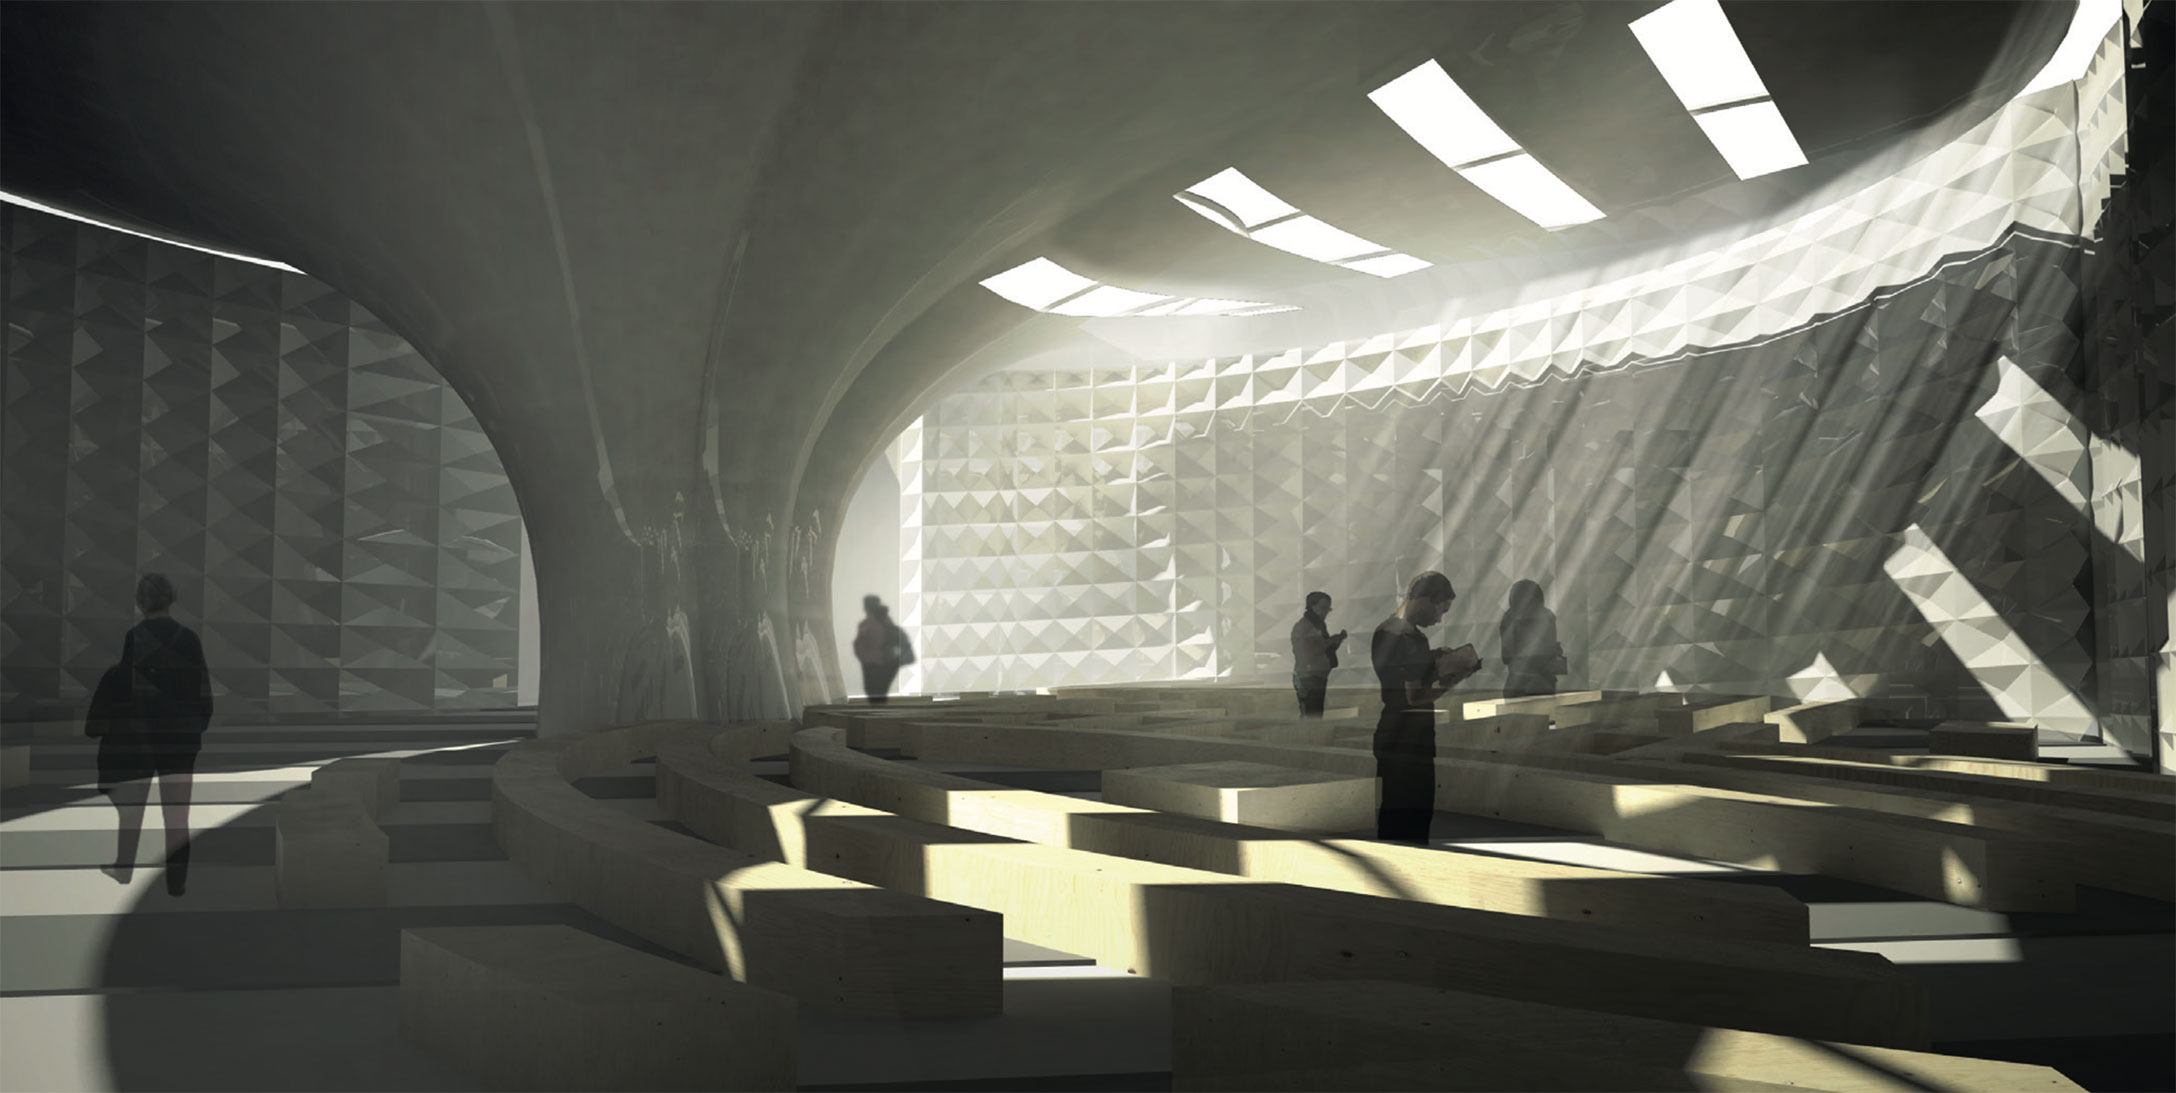 The interior focuses on elements that are important to all three faiths such as the use of natural light.